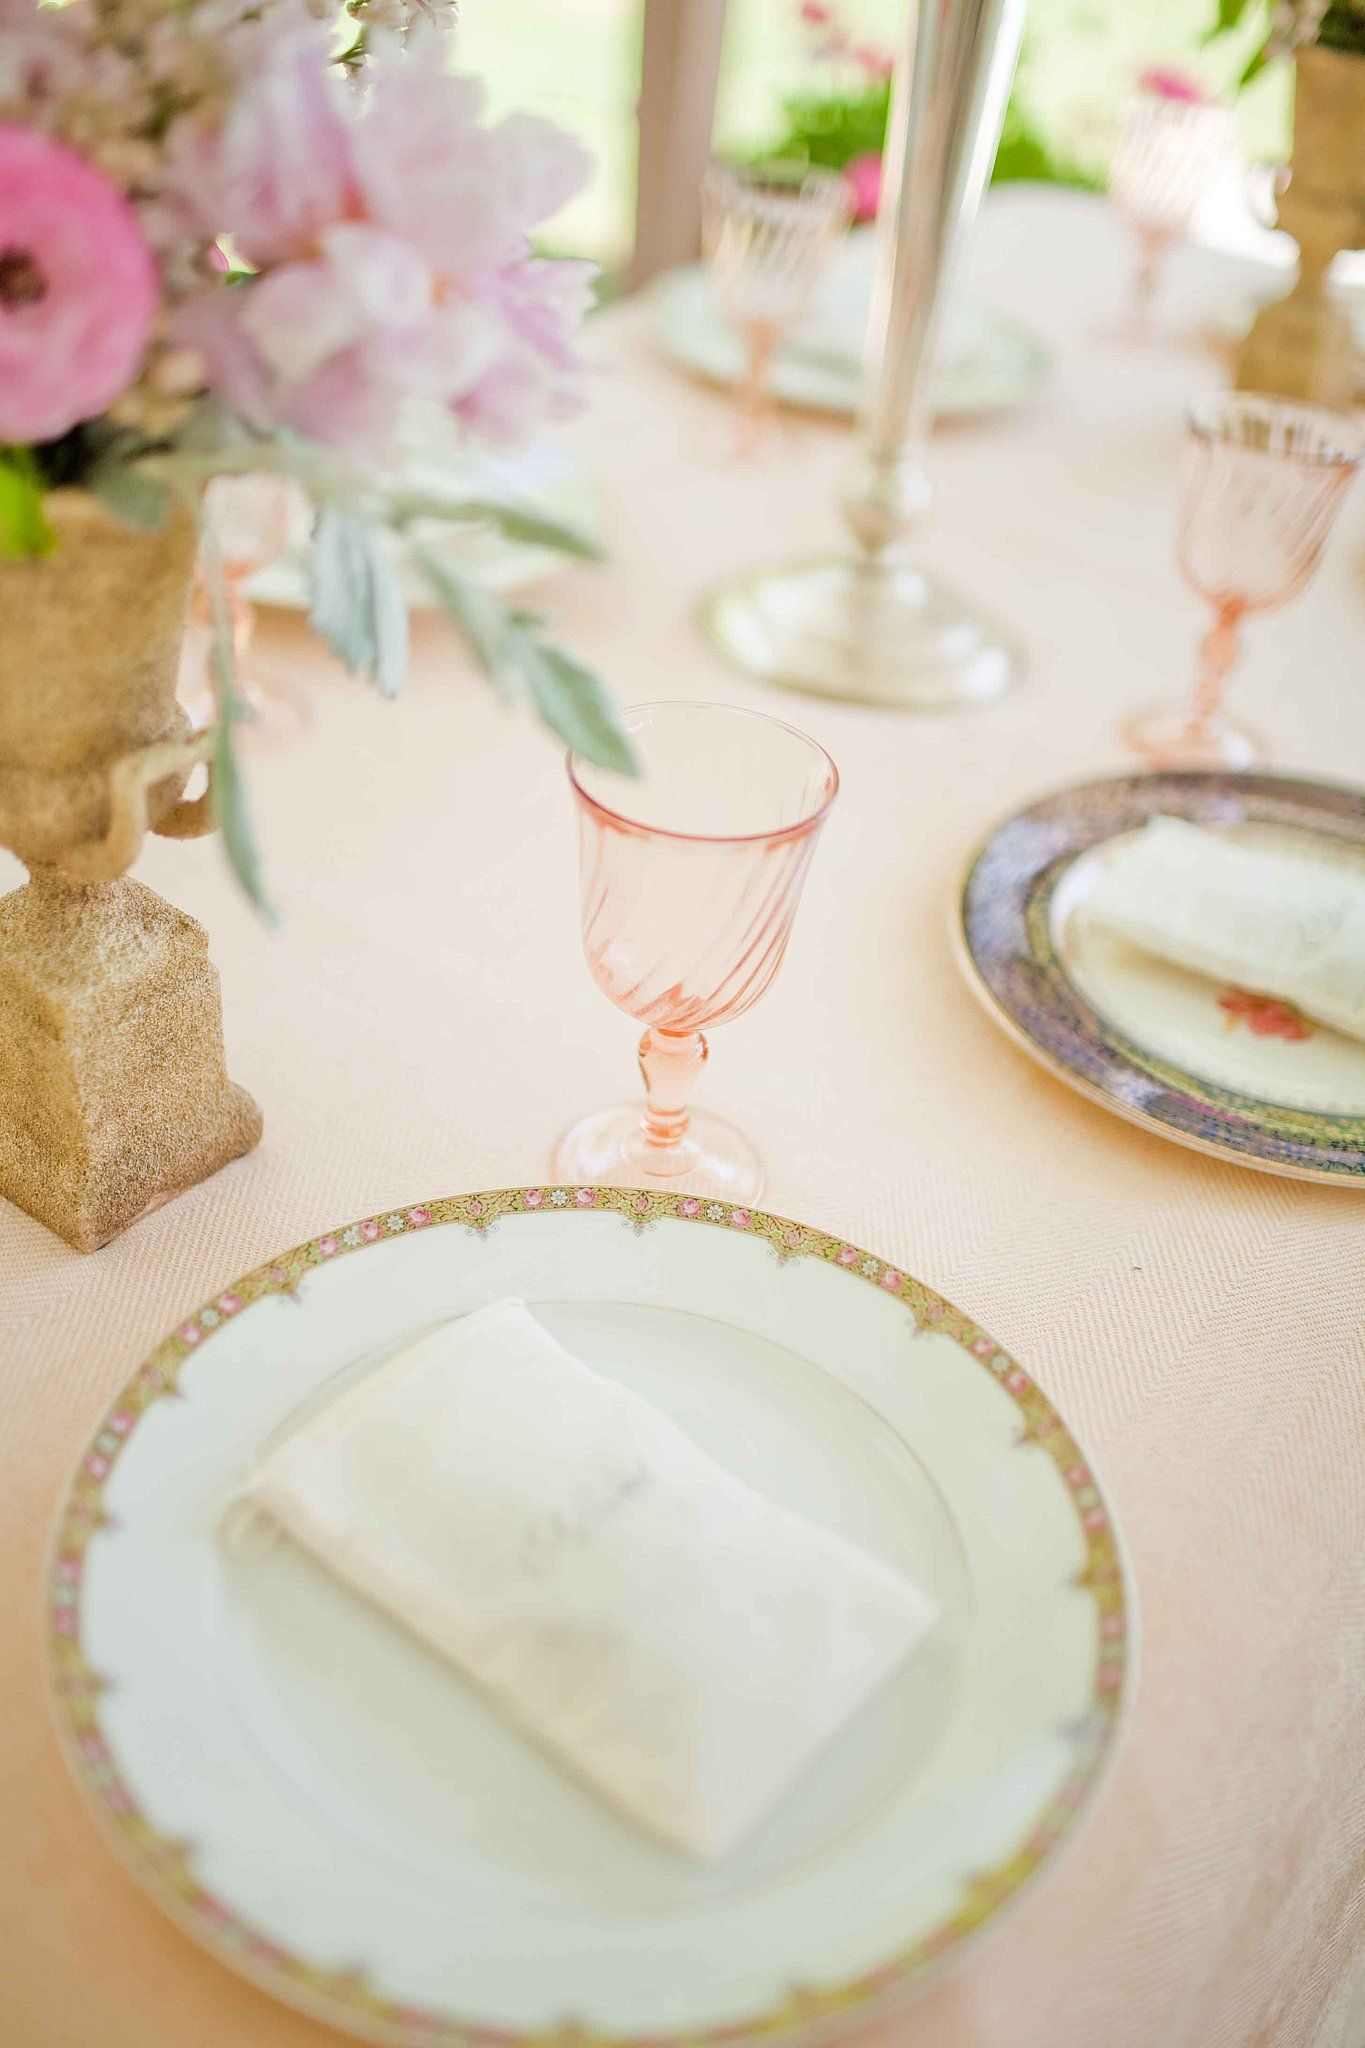 The gorgeous plates and glassware were by Casa de Perrin. Source ...